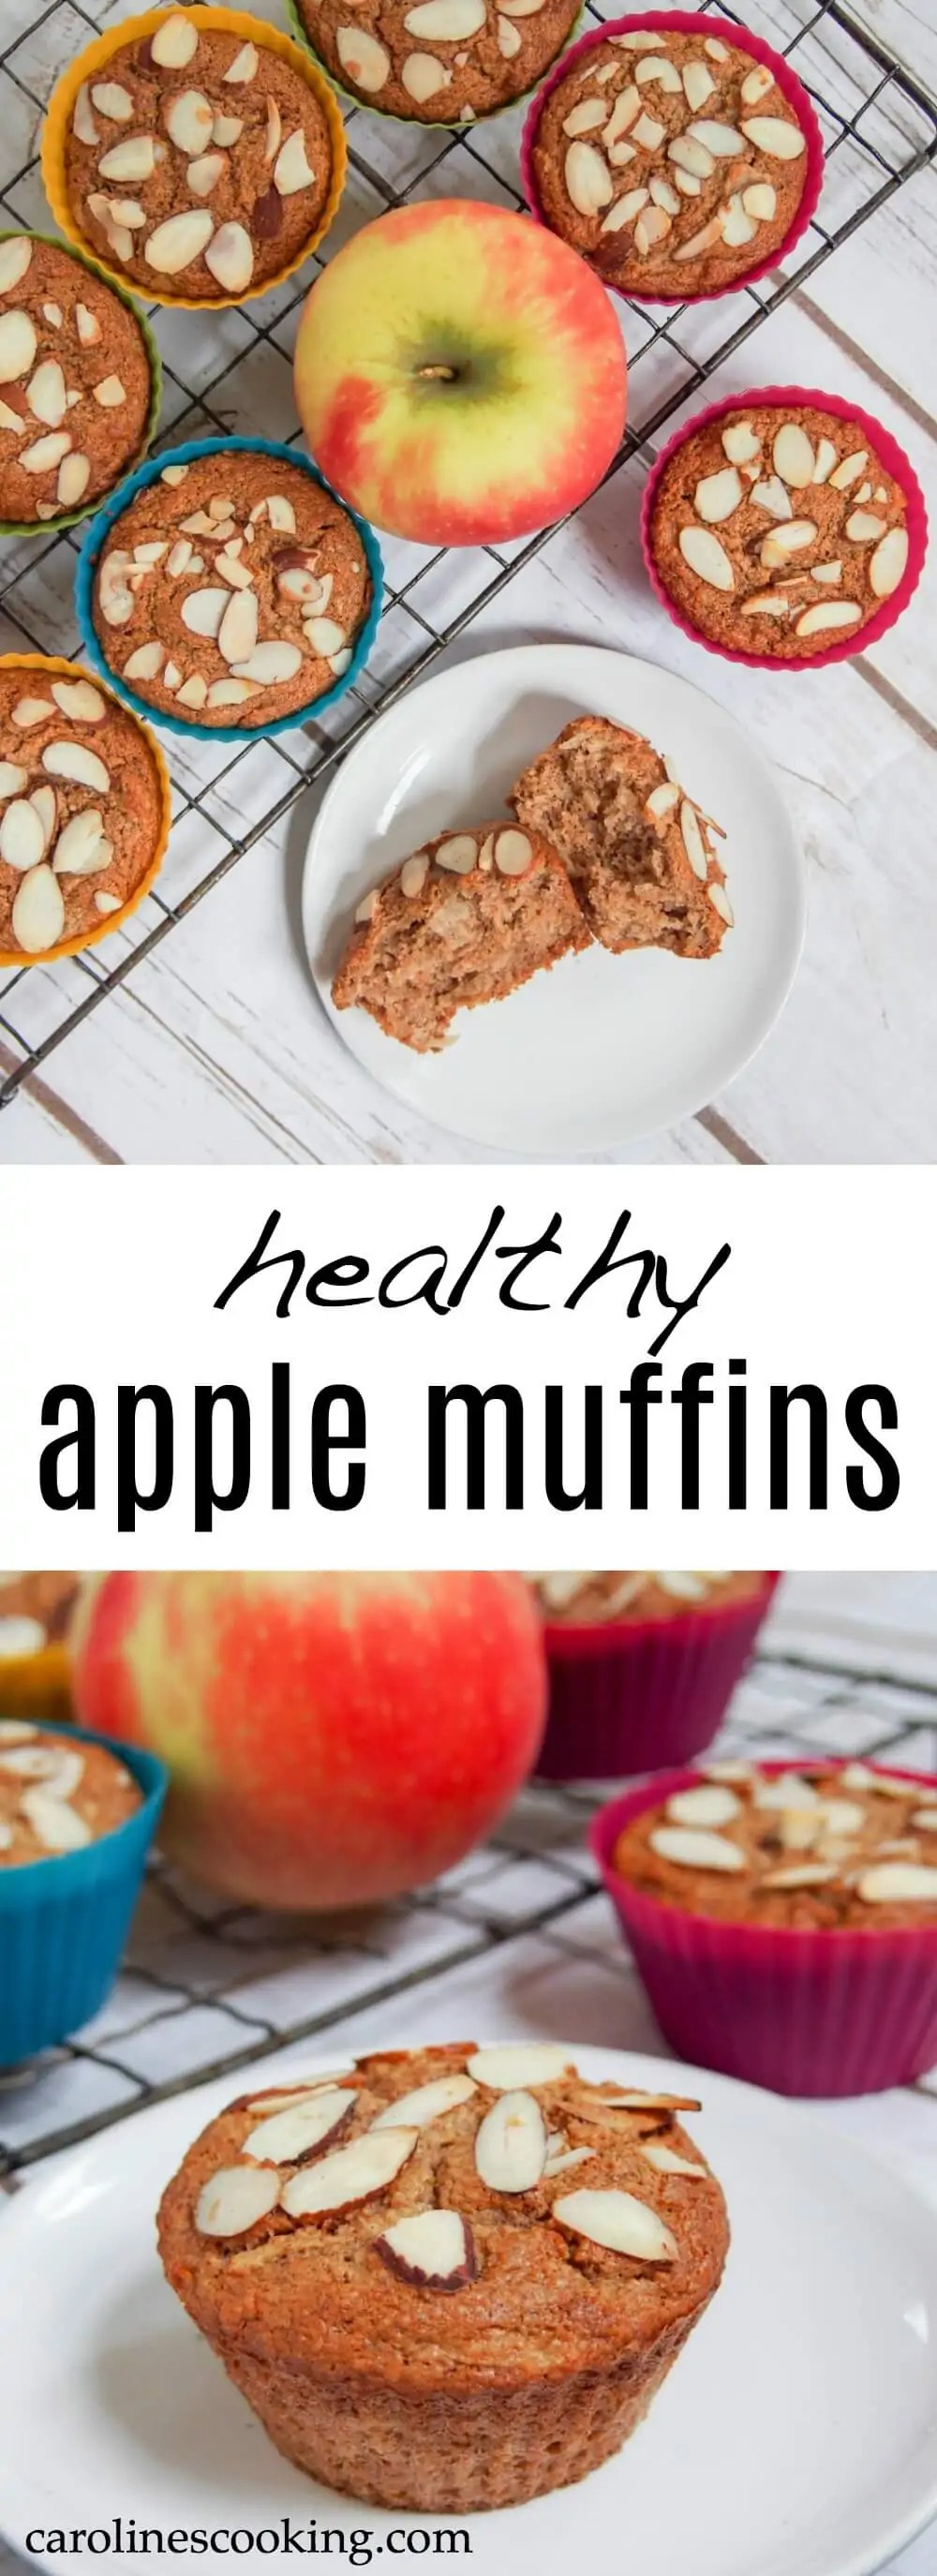 These healthy apple muffins are wonderfully moist, with fantastic apple flavors and a lovely crunch from the almonds on top. You'd never guess they were healthier. A delicious fall flavored snack.